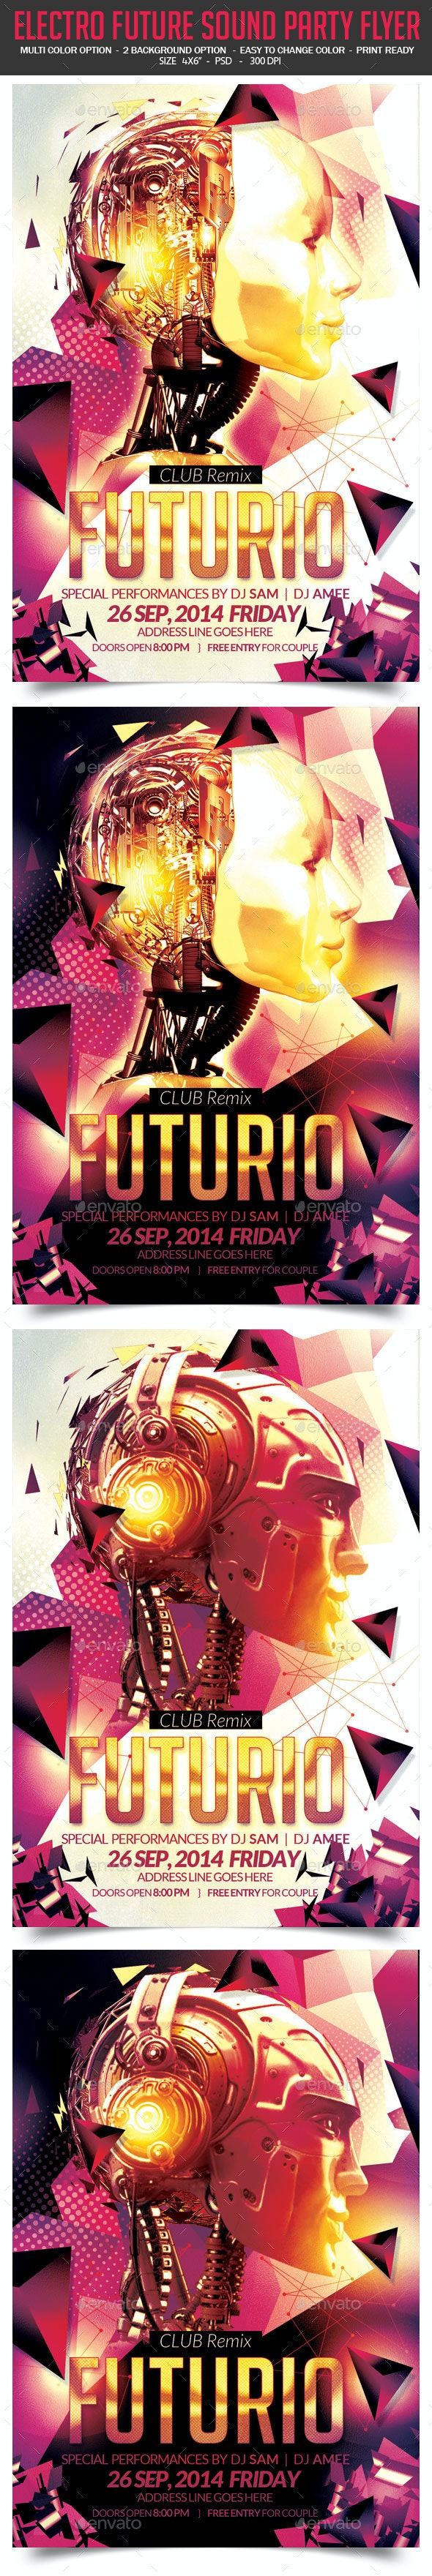 Electro Future Sound Party Flyer - Clubs & Parties Events